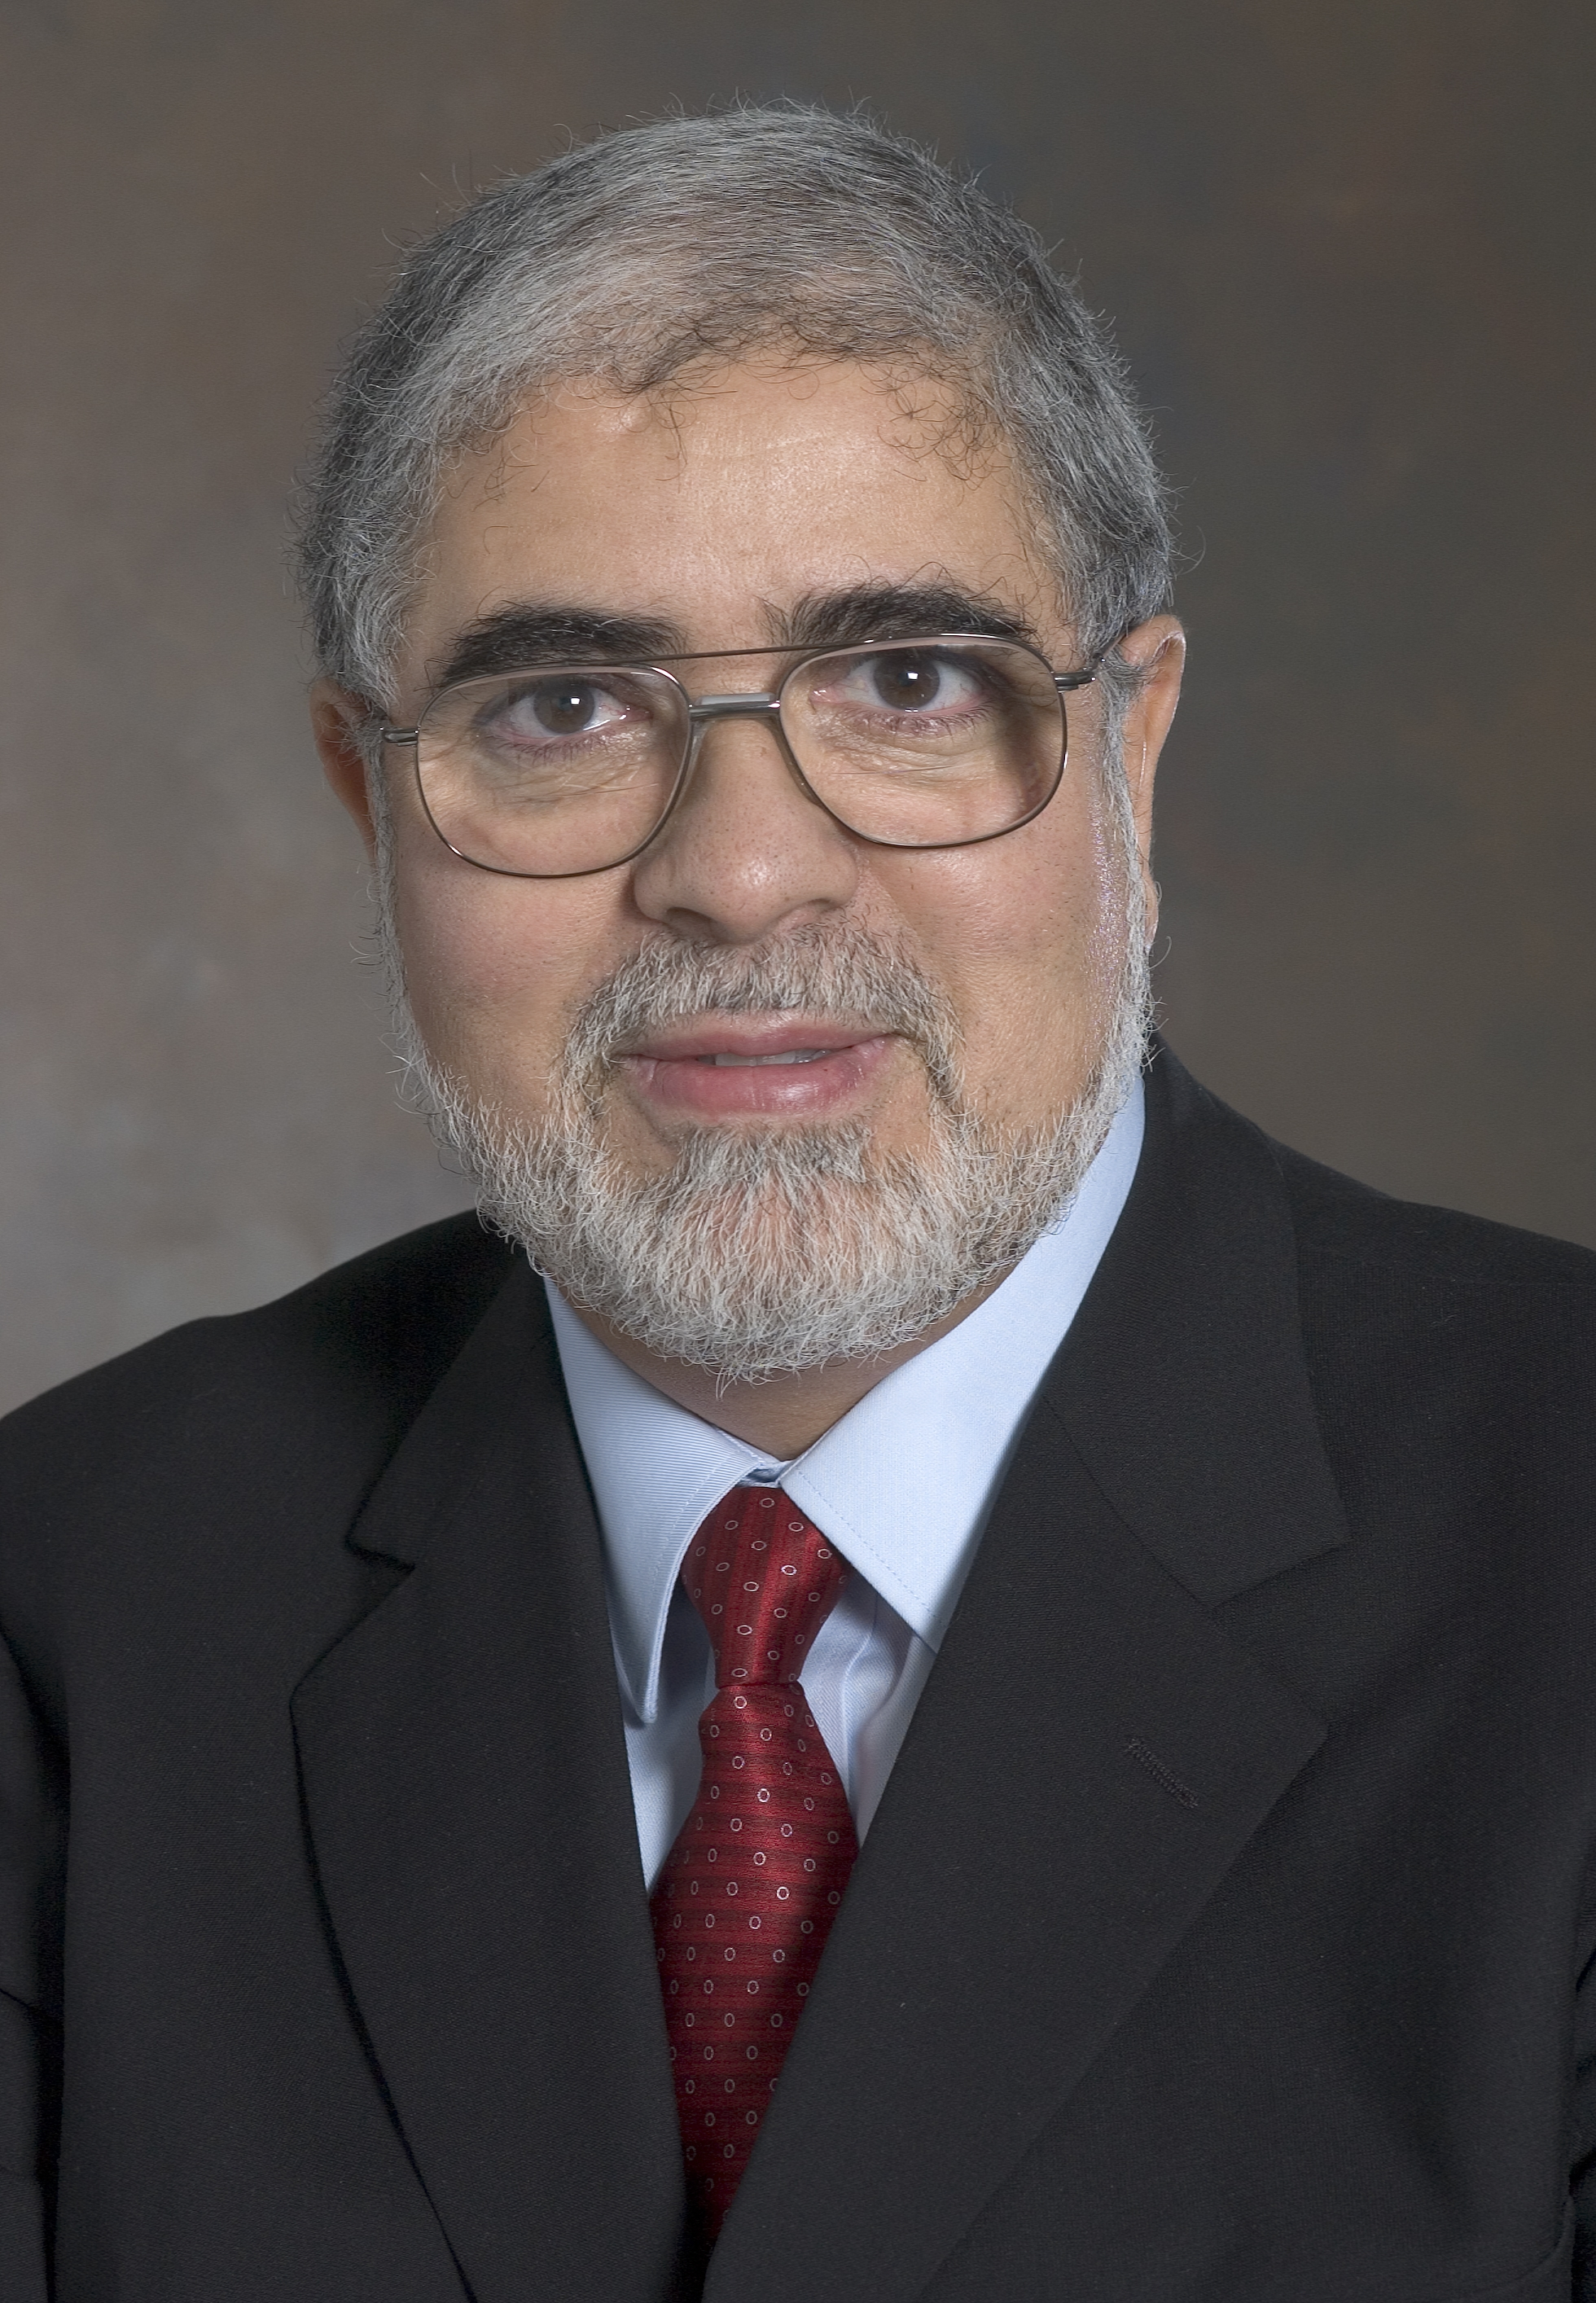 mustafa aziz Ibn abdul aziz, faisal, saudi arabian minister of foreign affairs and viceroy of  hijaz  nahas, mustafa, a leader of the egyptian wafd party prime minister  and.